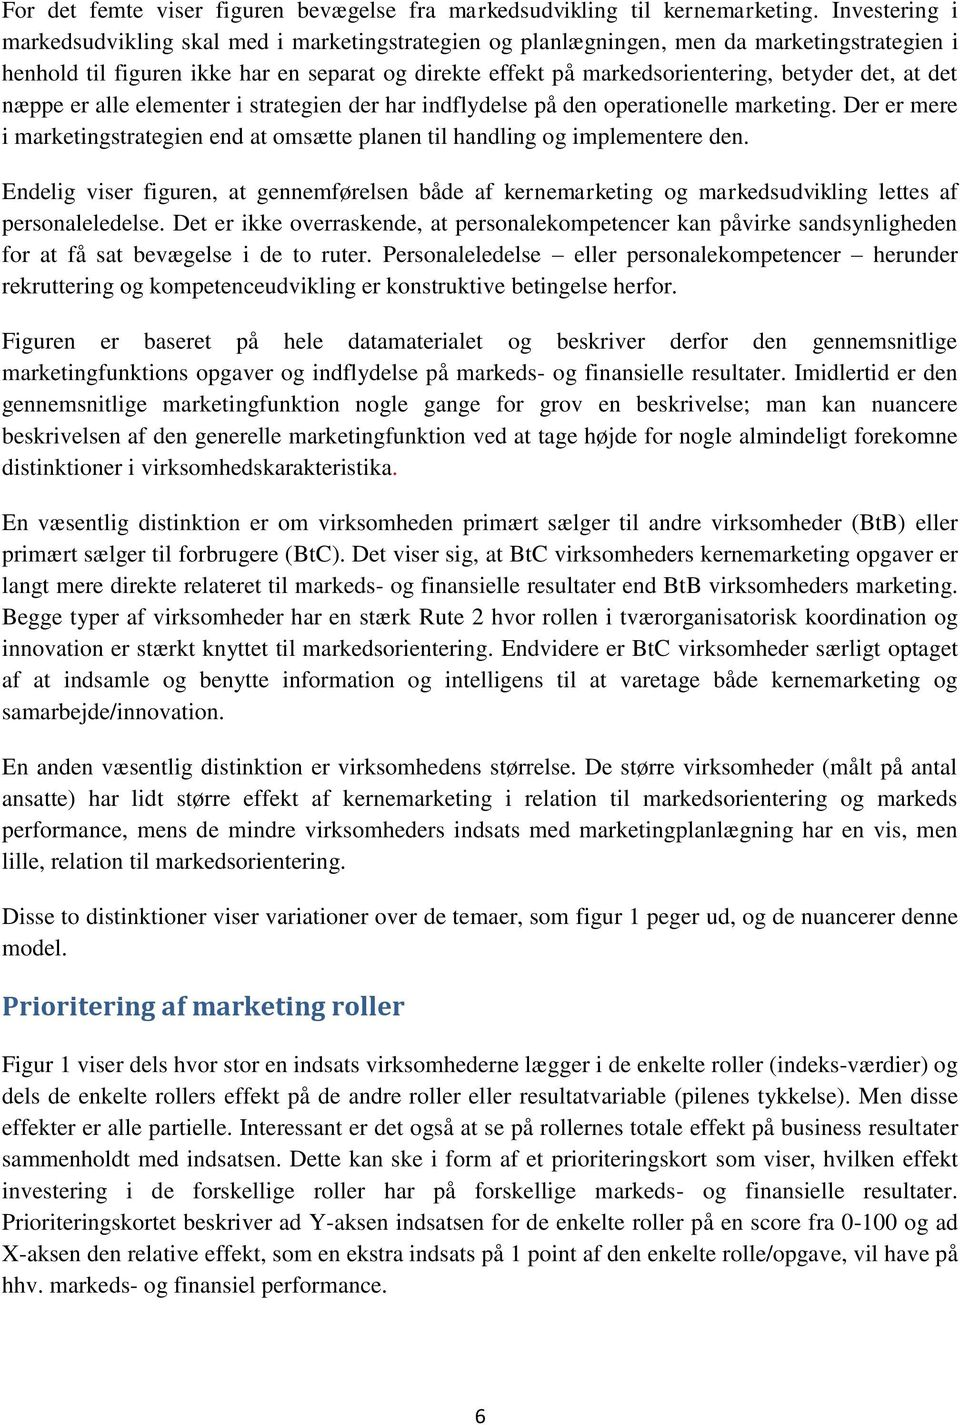 det, at det næppe er alle elementer i strategien der har indflydelse på den operationelle marketing. Der er mere i marketingstrategien end at omsætte planen til handling og implementere den.